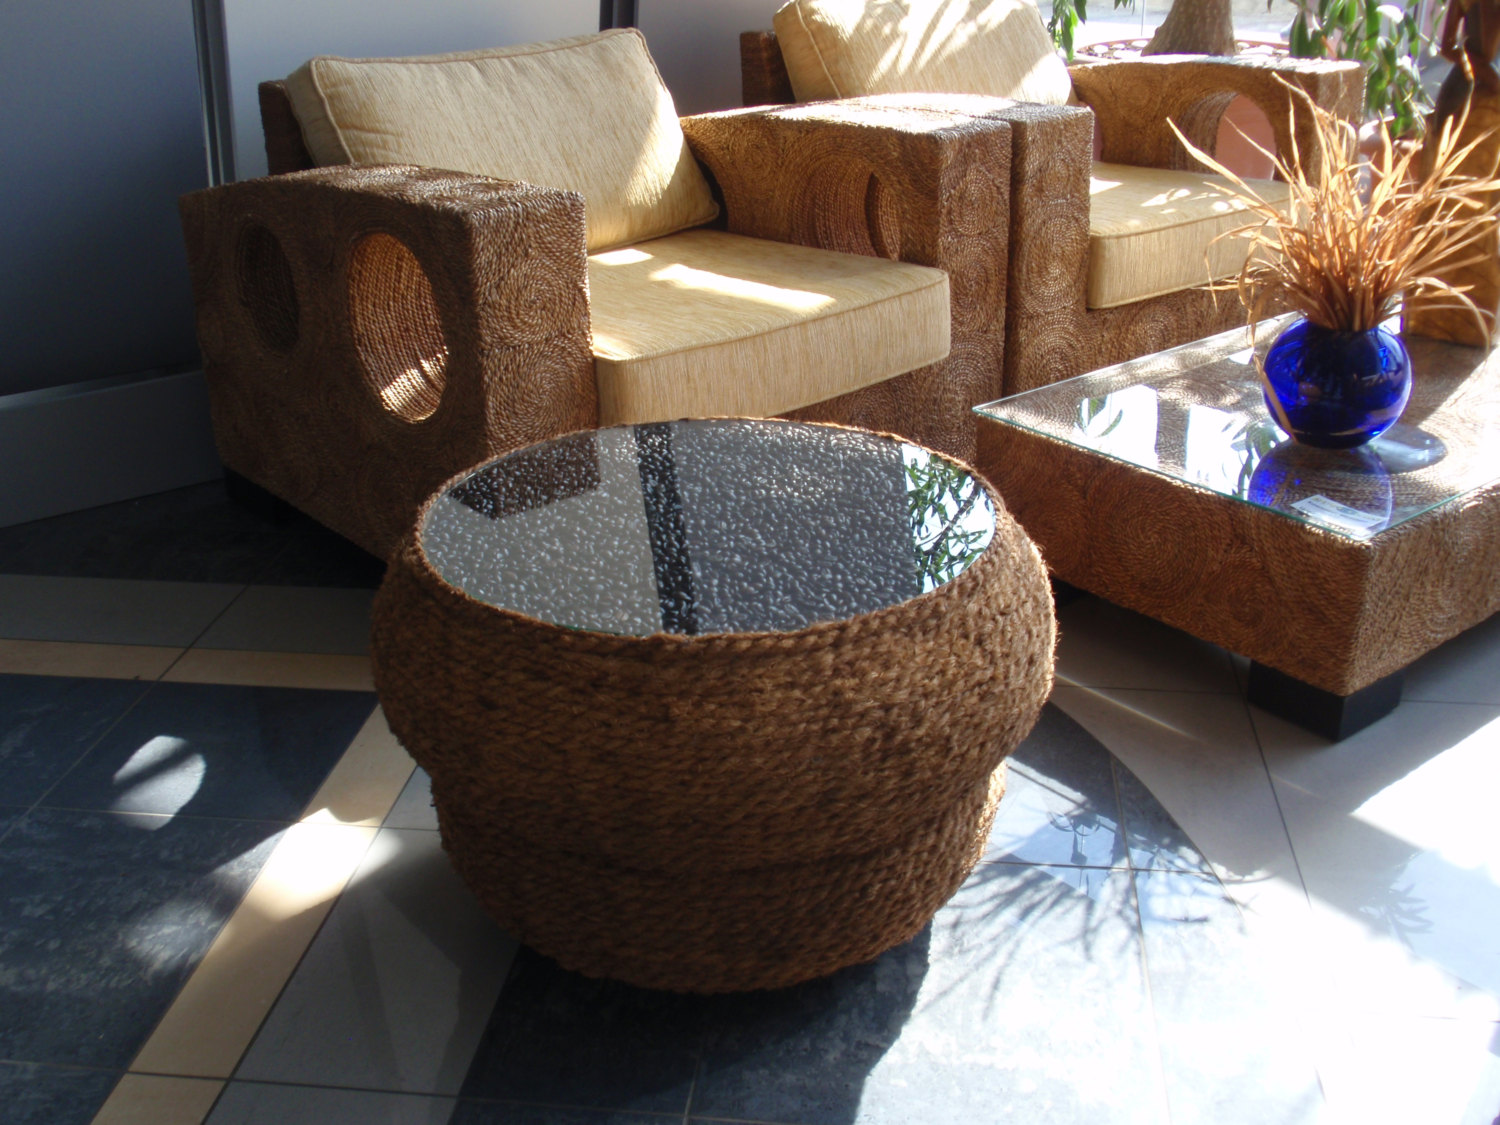 Astonishing Coffee Table Made By 2 Recycled Motorcycle Tyres Coconut Rope And Coffee Bean Decorated Top Tempered Glass Top Finish Inzonedesignstudio Interior Chair Design Inzonedesignstudiocom